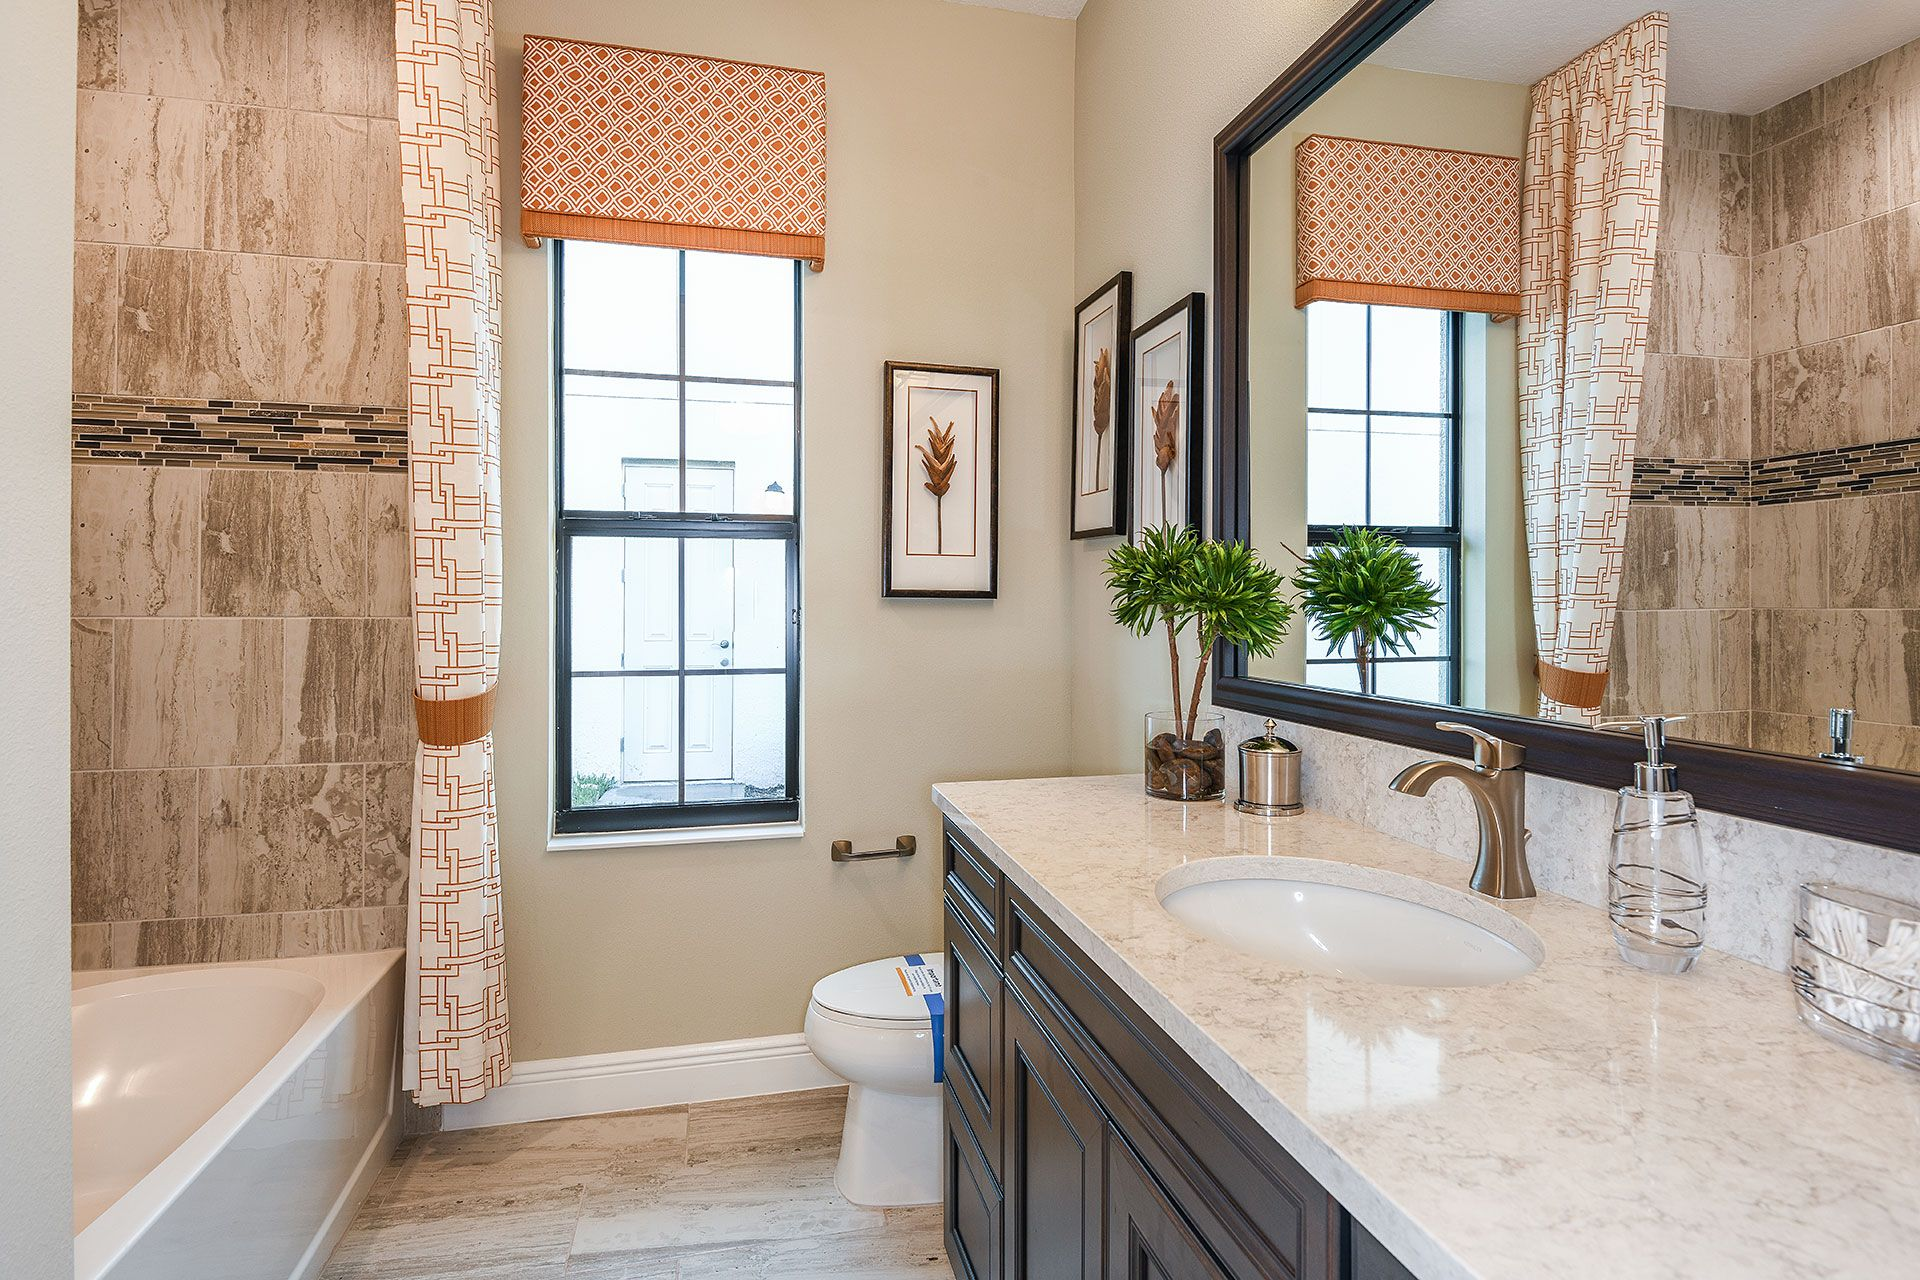 Bathroom featured in the Swann IV By Homes by WestBay in Sarasota-Bradenton, FL